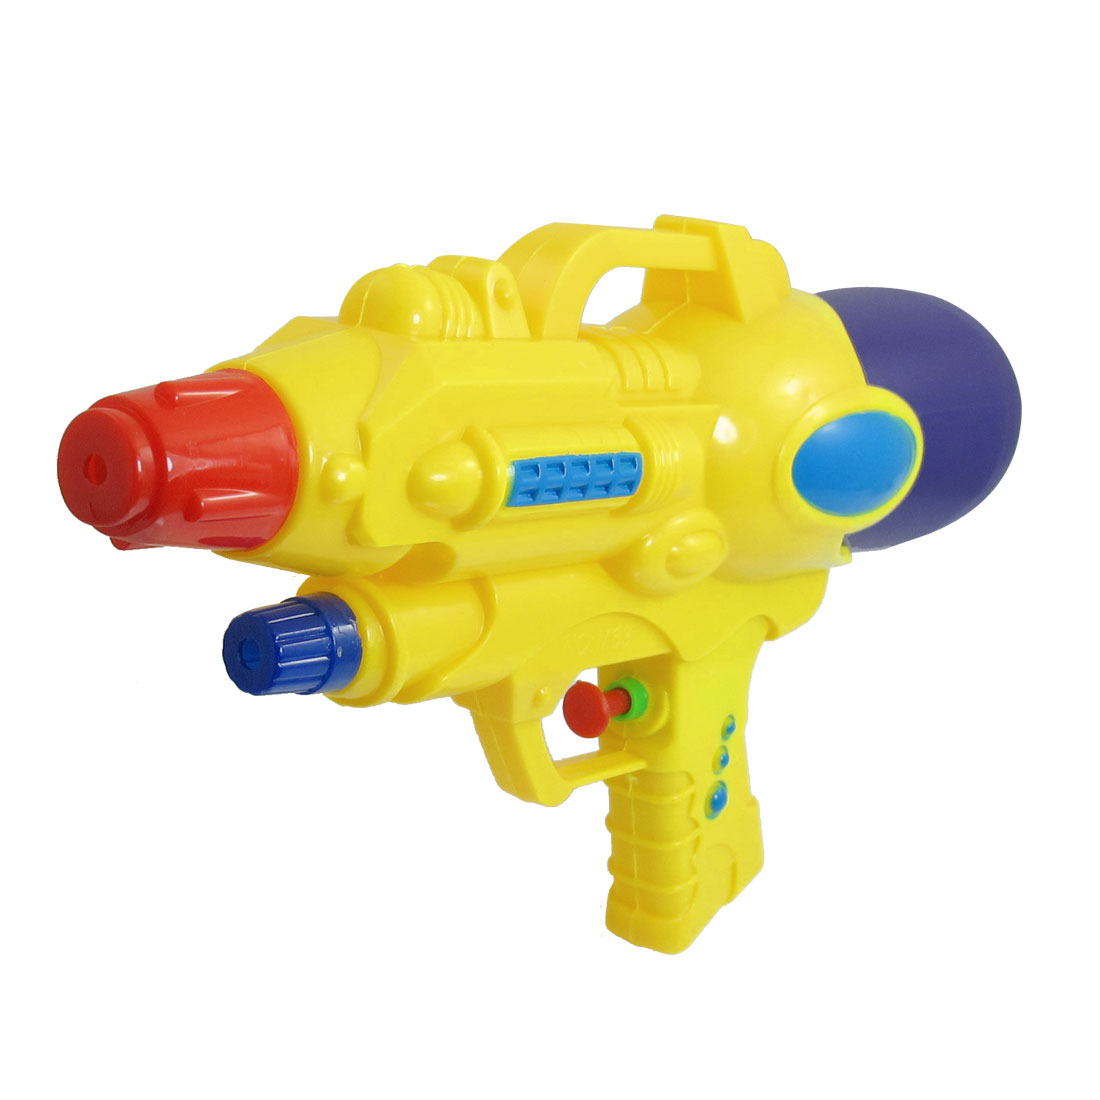 "10.2"" Length Purple Yellow Plastic Water Spray Gun Squirt Toy for Children"